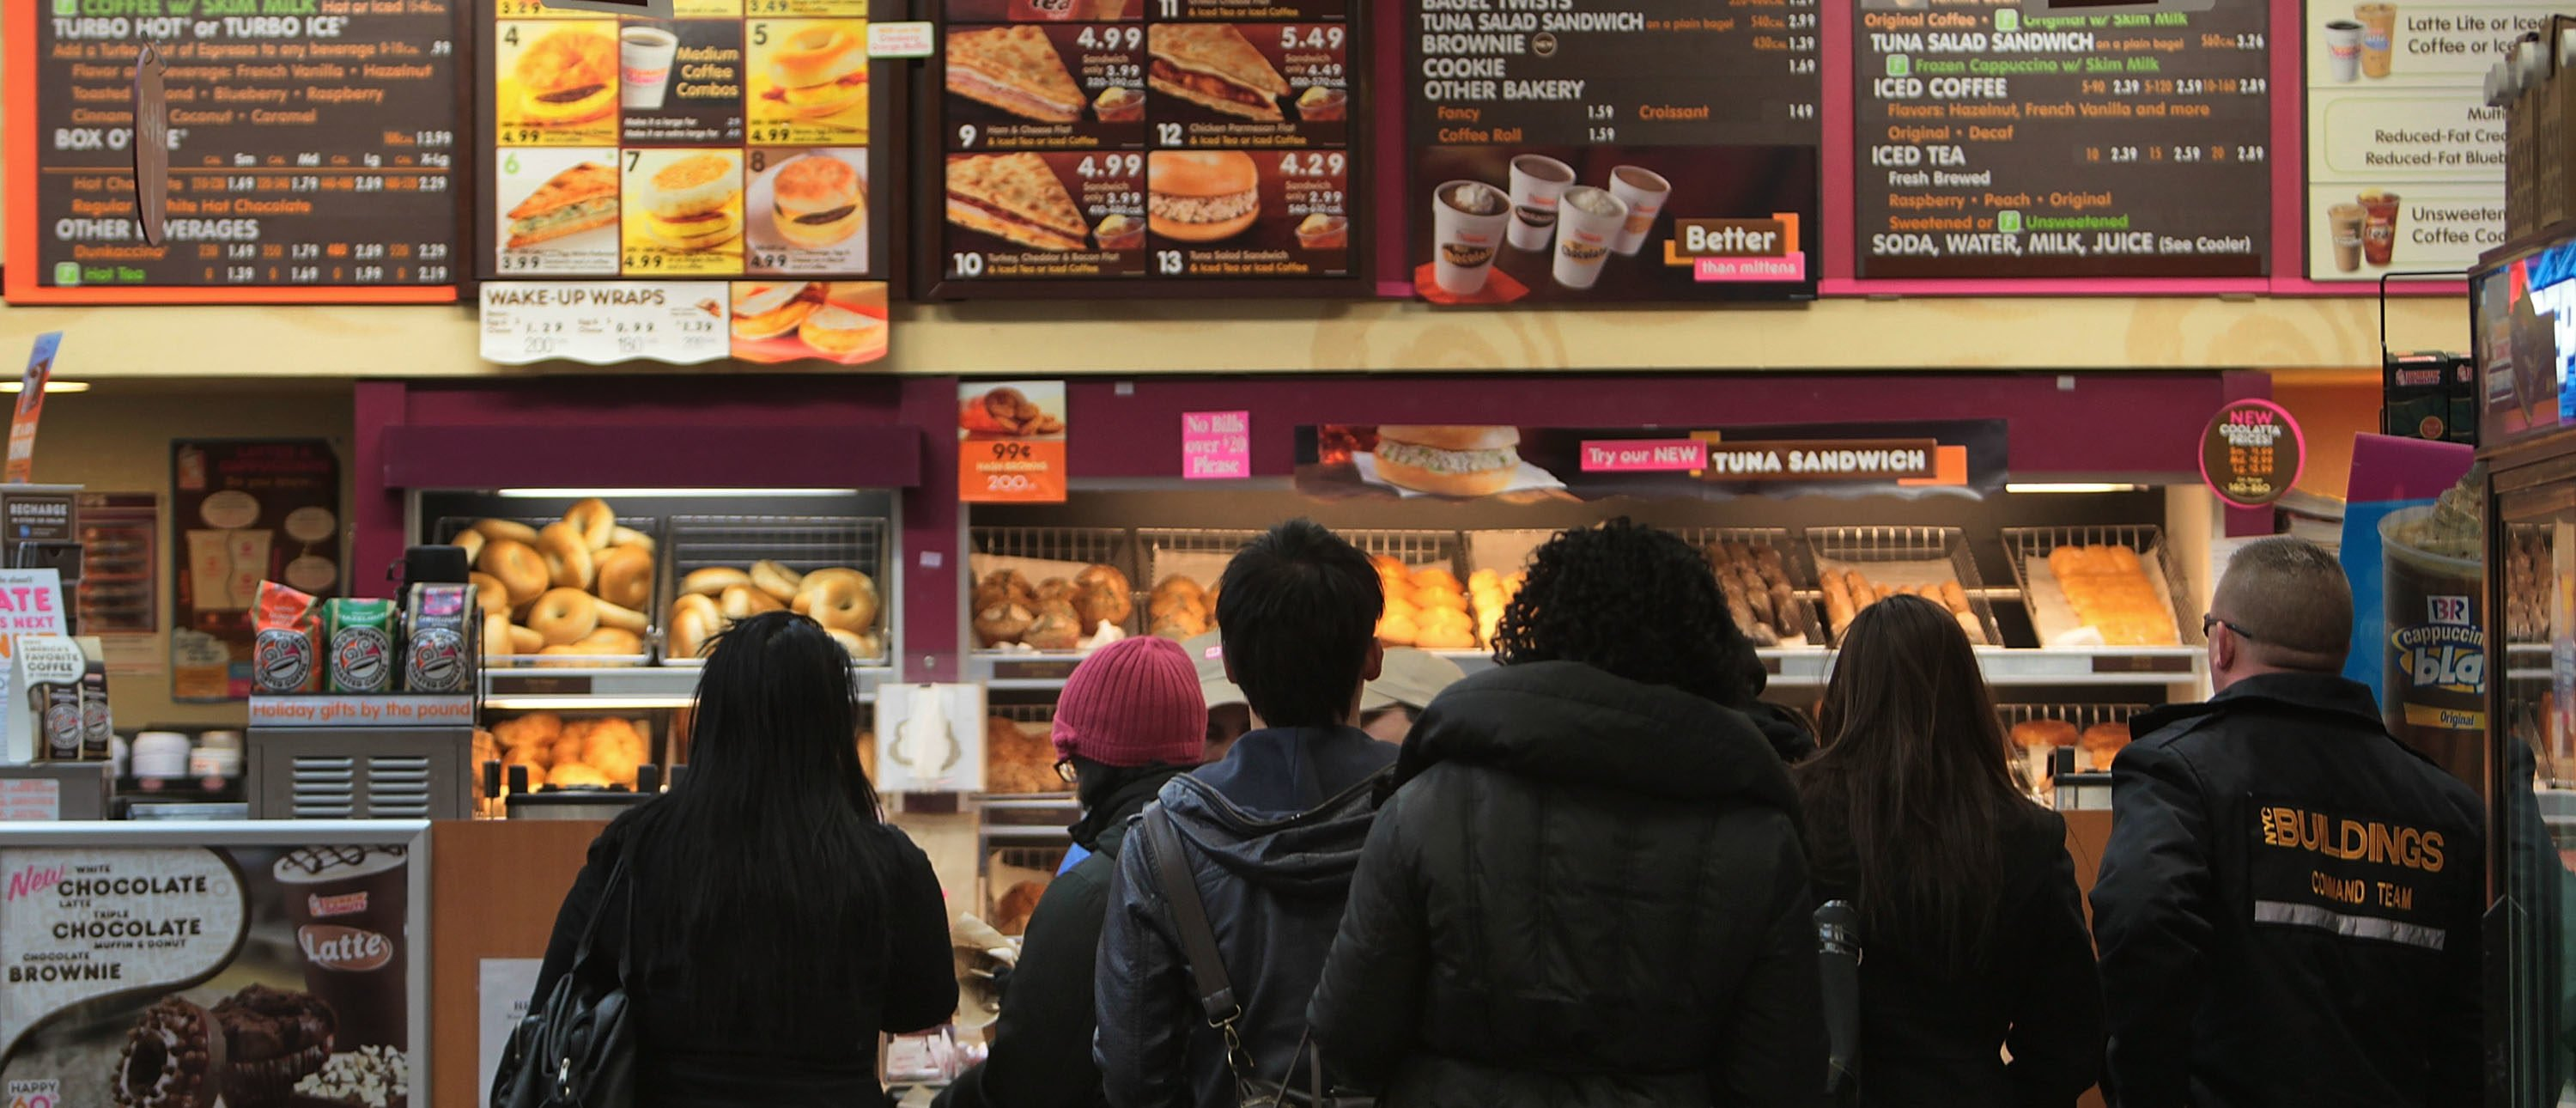 NEW YORK - FEBRUARY 22: People wait in line in the morning at a Dunkin' Donuts chain restaurant February 22, 2010 in New York City. Restaurant breakfast sales across the country are down sharply, and analysts blame the troubled economy for the dip as fewer Americans go to work in the mornings. (Photo by Chris Hondros/Getty Images)